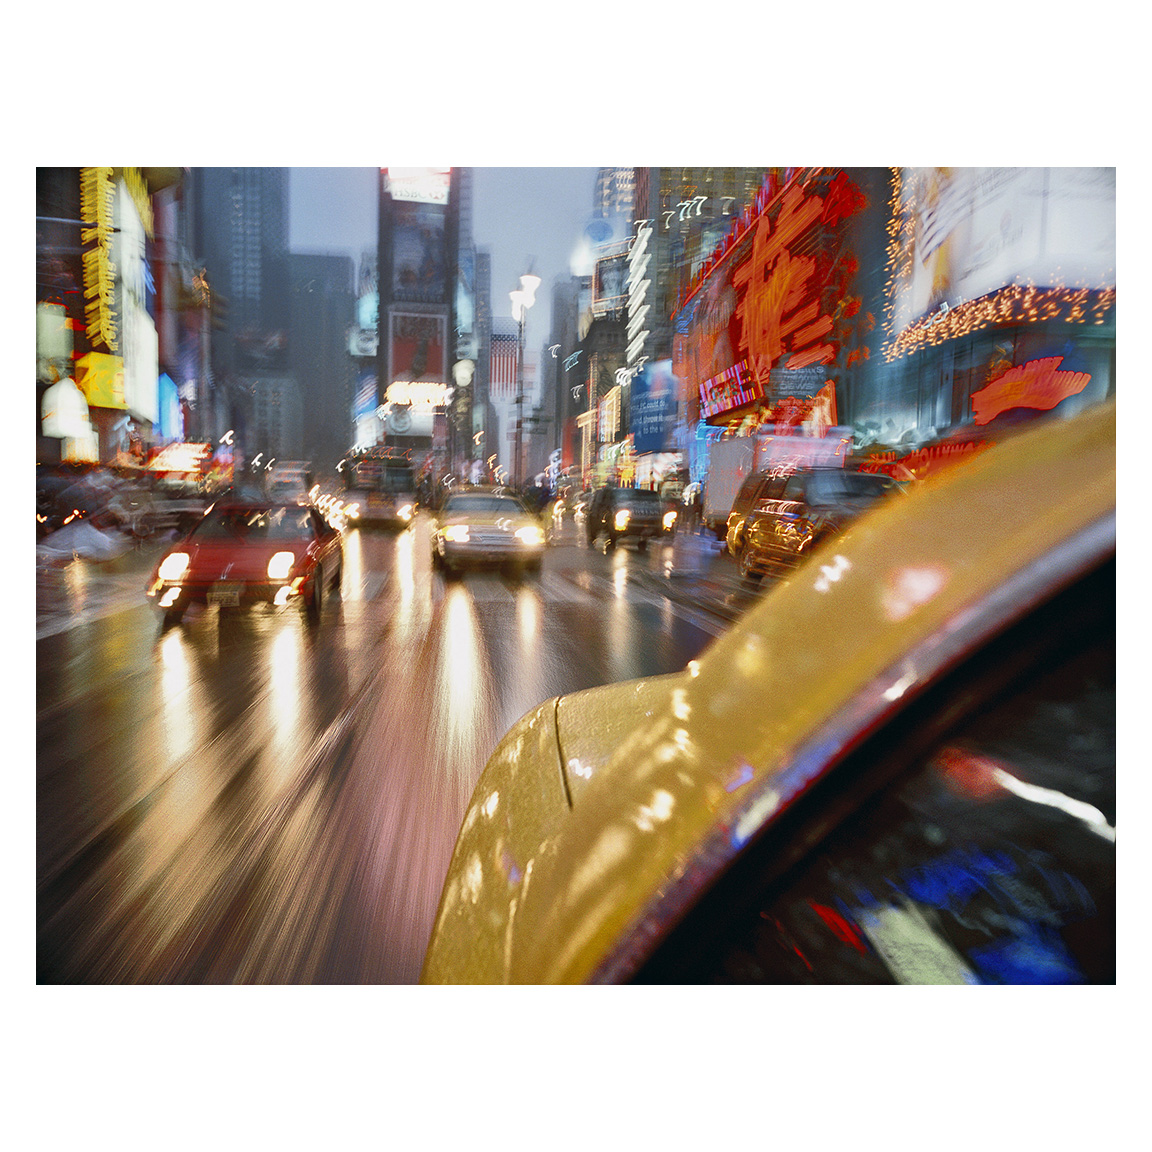 Taxi in Time Square by Lynn Saville